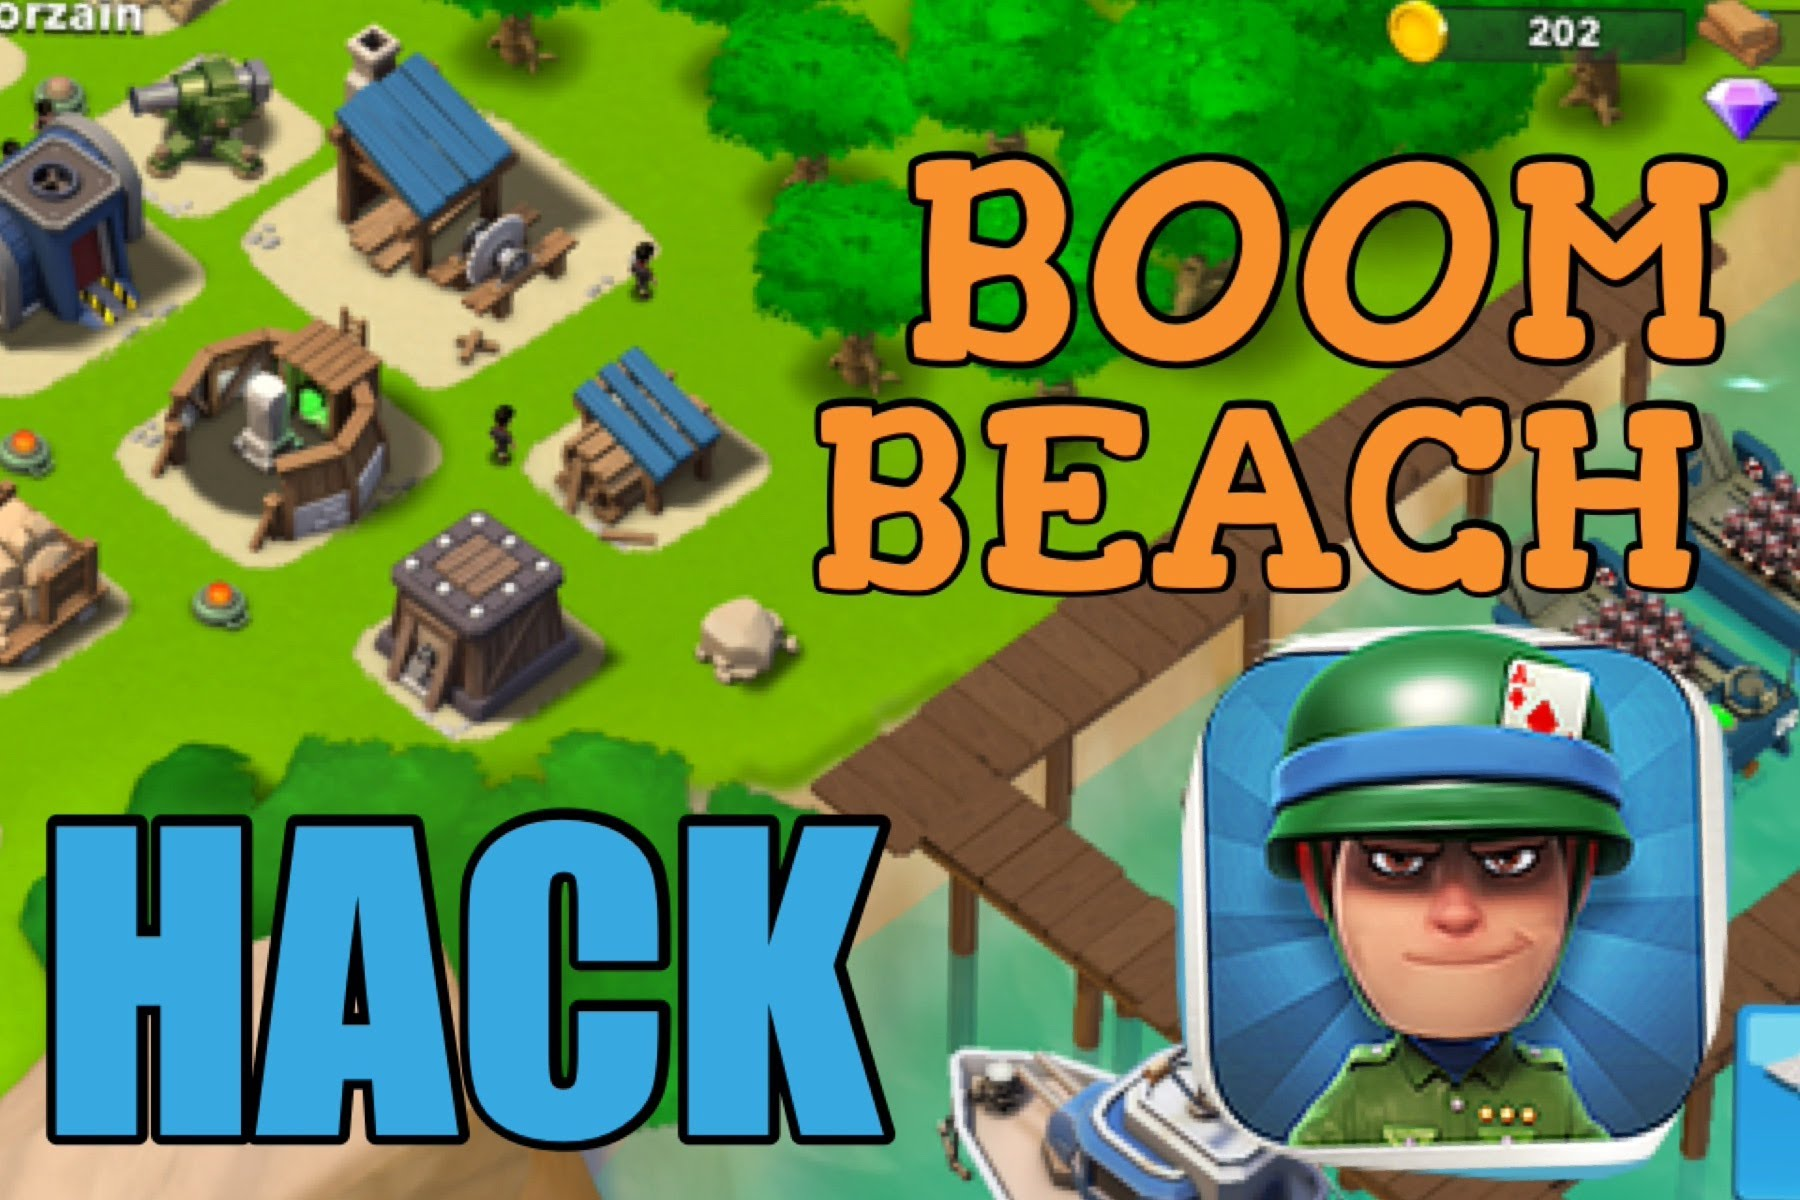 Tycoongamers.com/boom-beach-hack-free-diamonds-gems